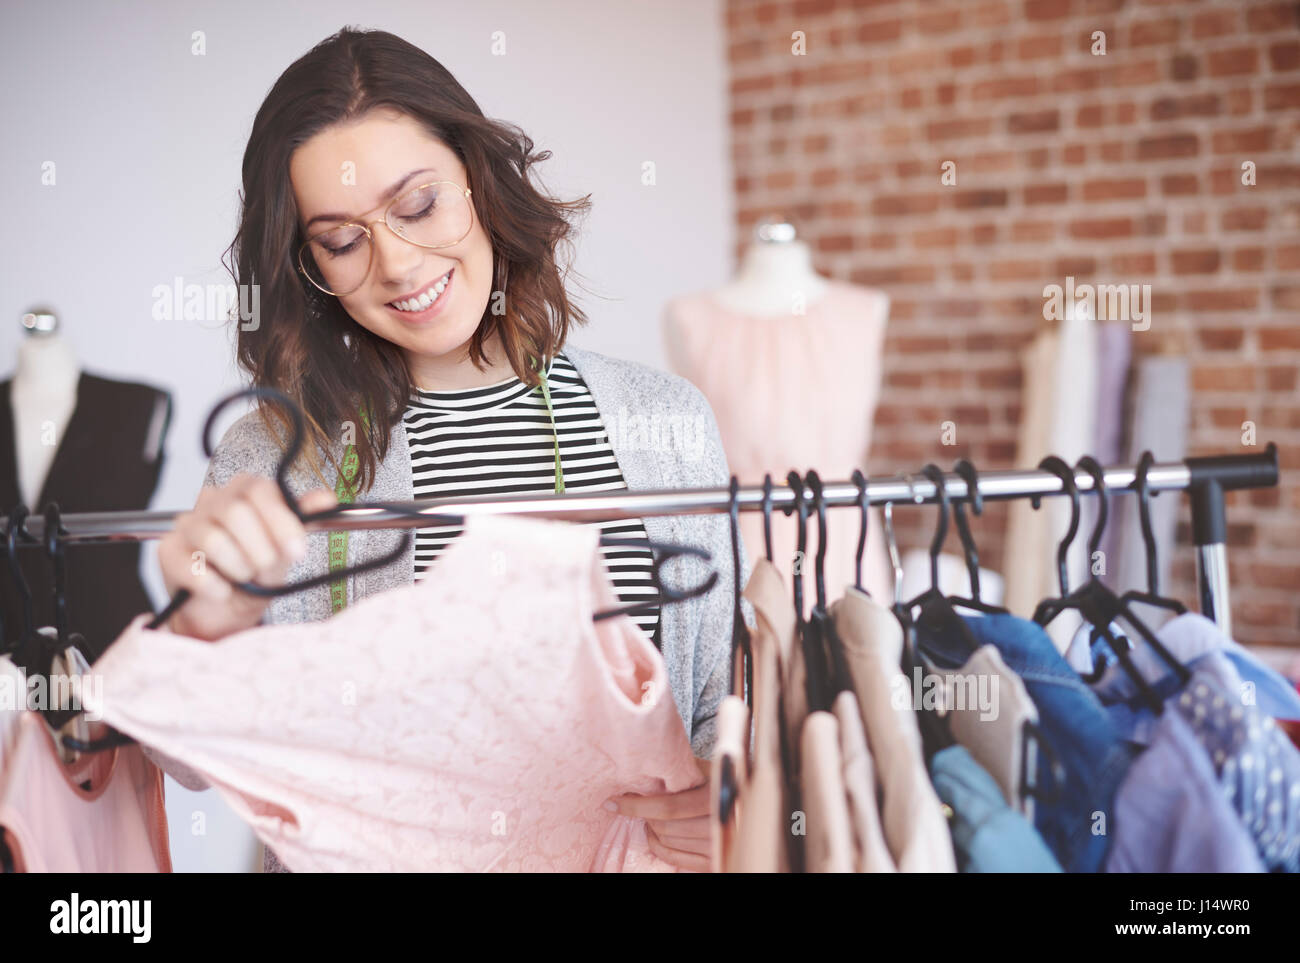 Fashion designer searching outfits on clothing racks - Stock Image